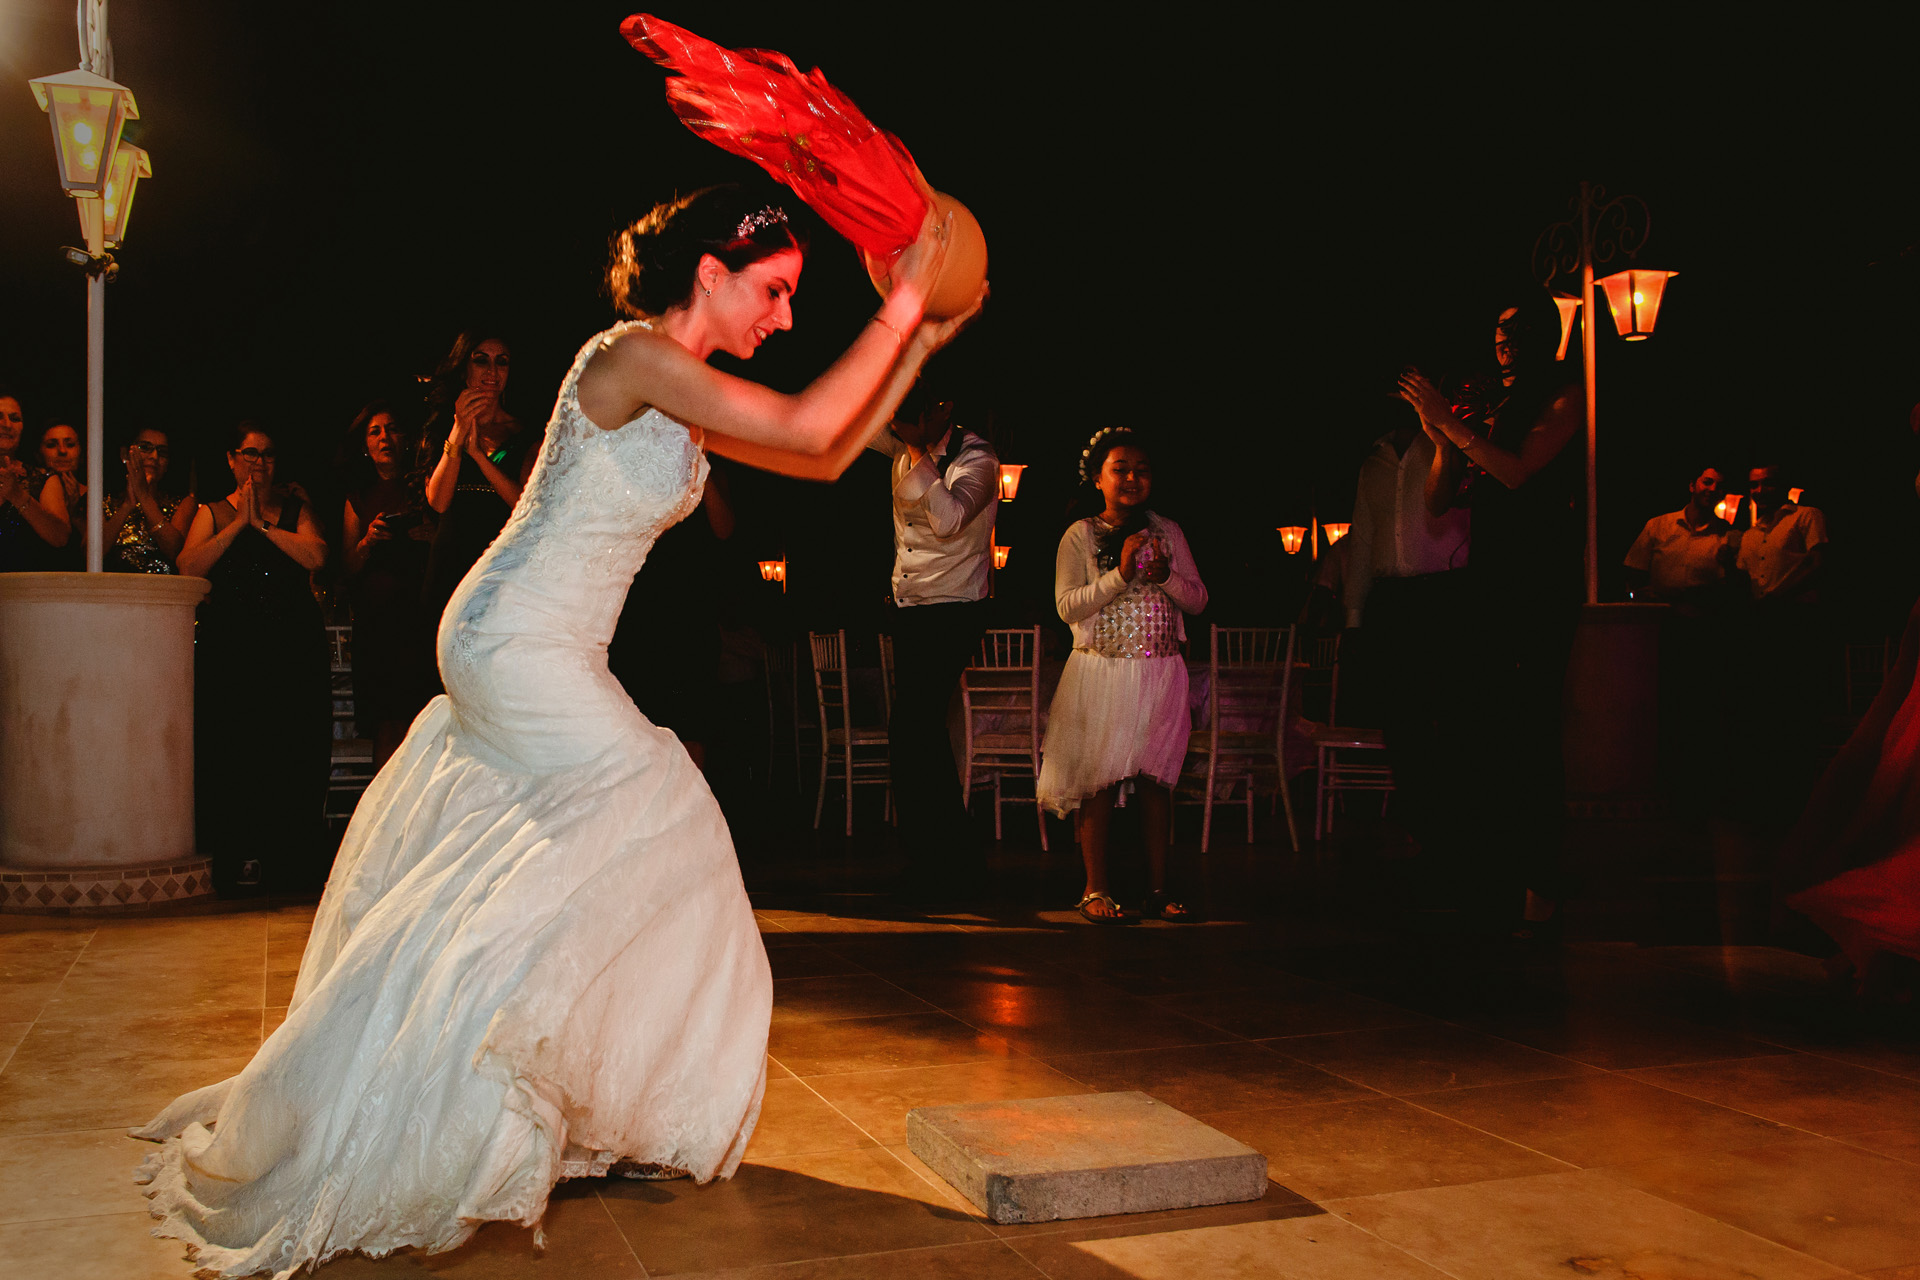 Elopement Wedding Traditions in Cyprus - Reception Photo | Candies and coins inside the jug go everywhere and kids come and get it all